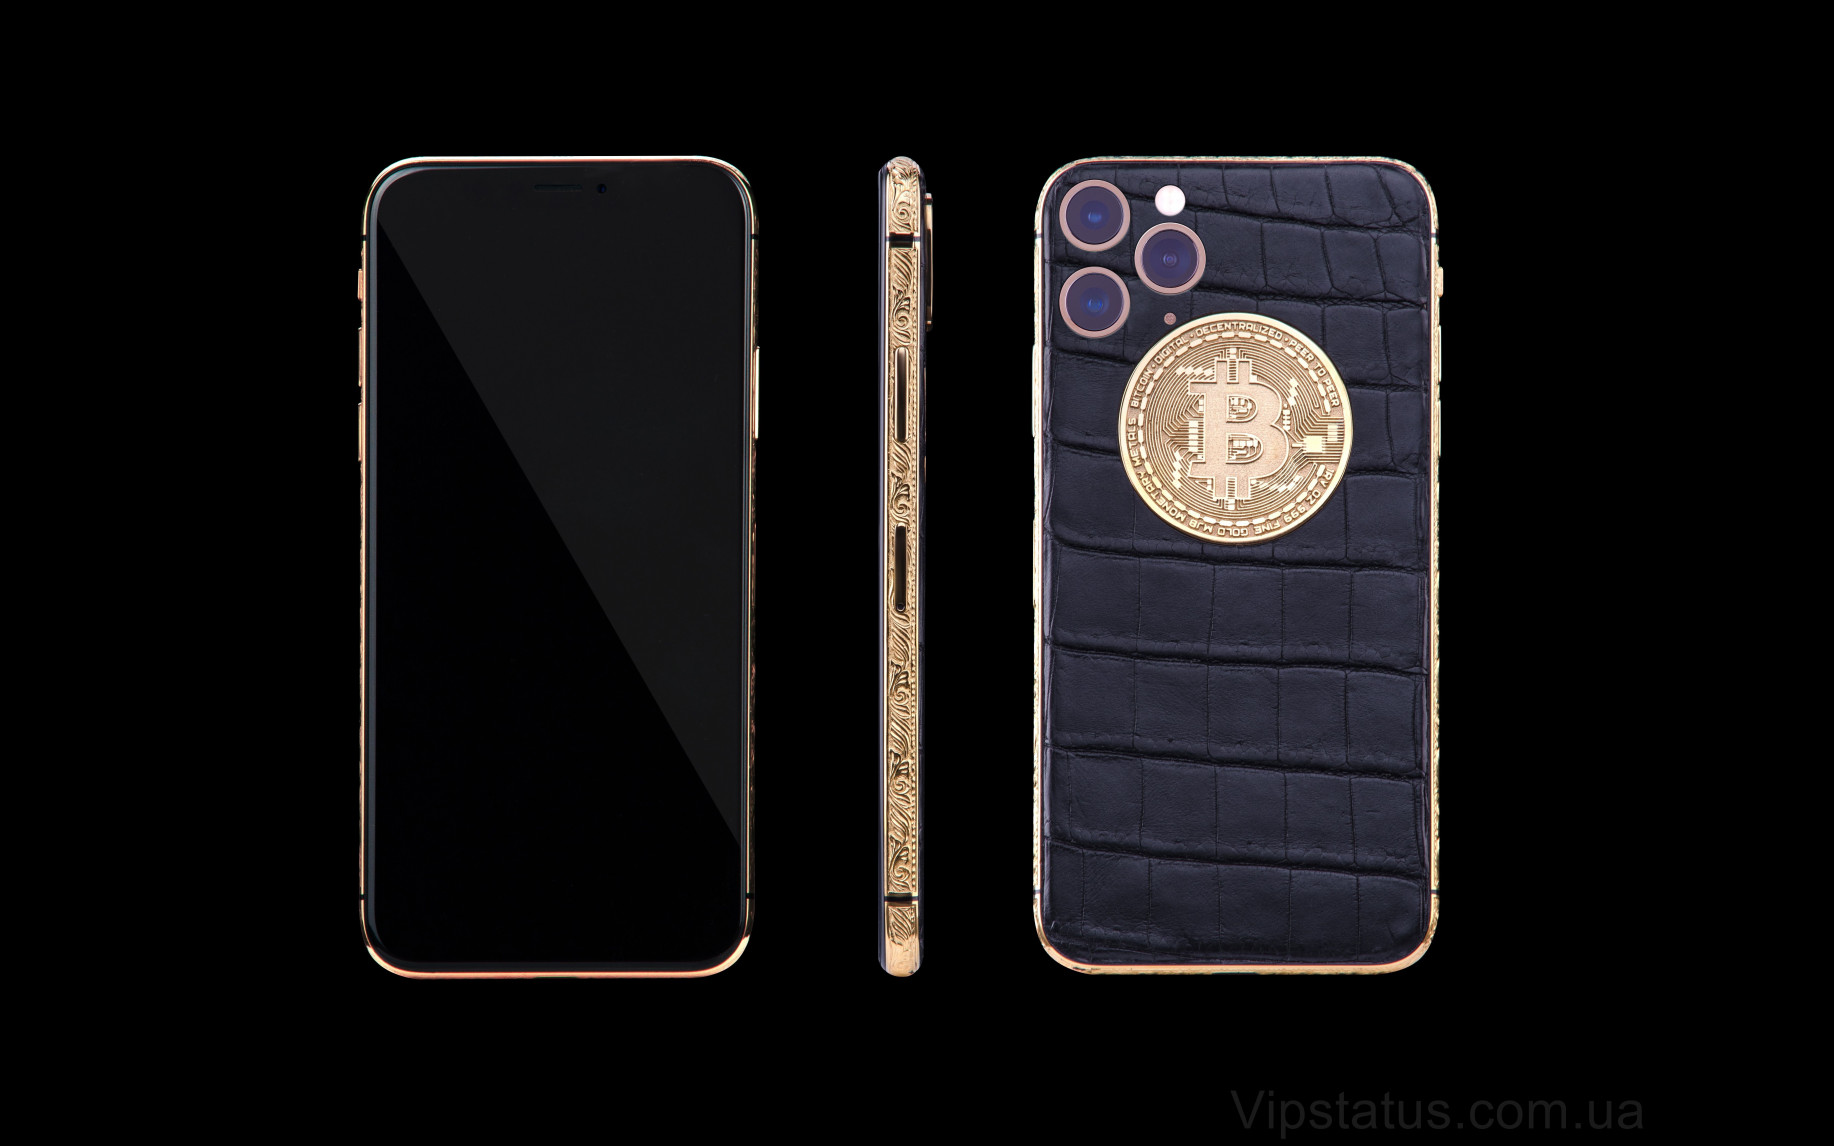 Elite Great Bitcoin IPHONE 11 PRO MAX 512 GB Great Bitcoin IPHONE 11 PRO MAX 512 GB image 2